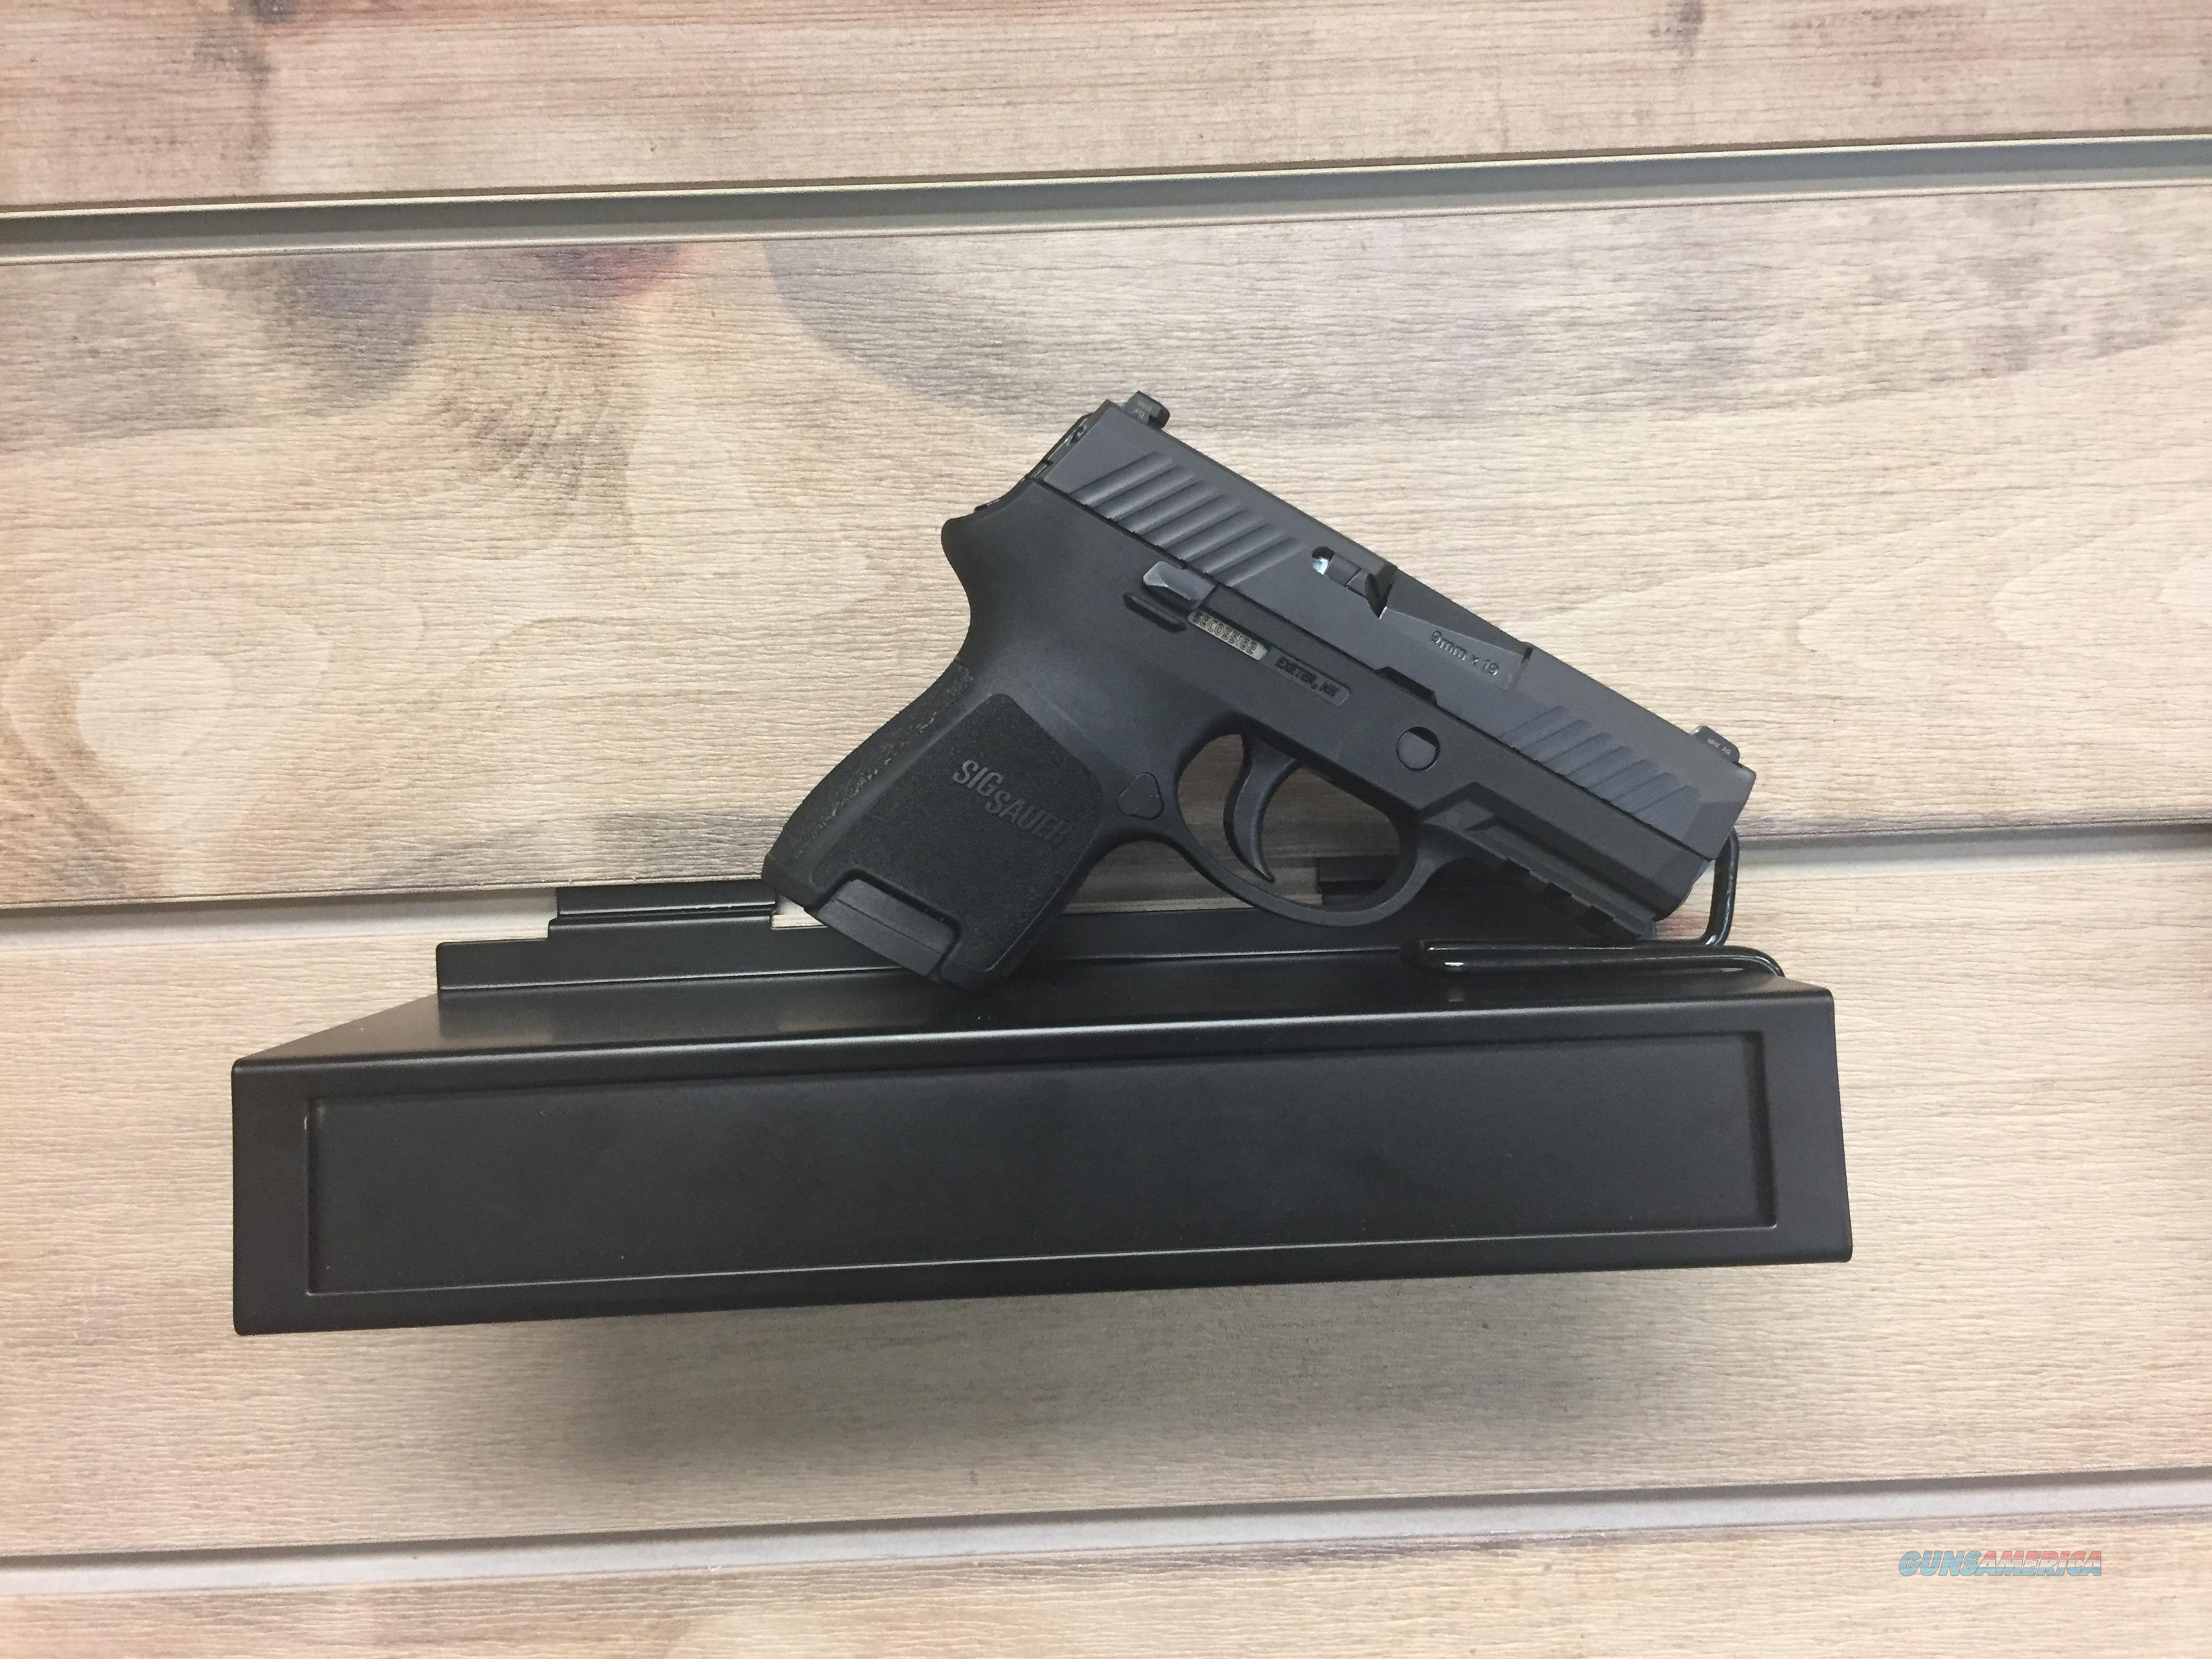 SIG SAUER P320 SUB COMPACT 9MM  Guns > Pistols > Sig - Sauer/Sigarms Pistols > P320